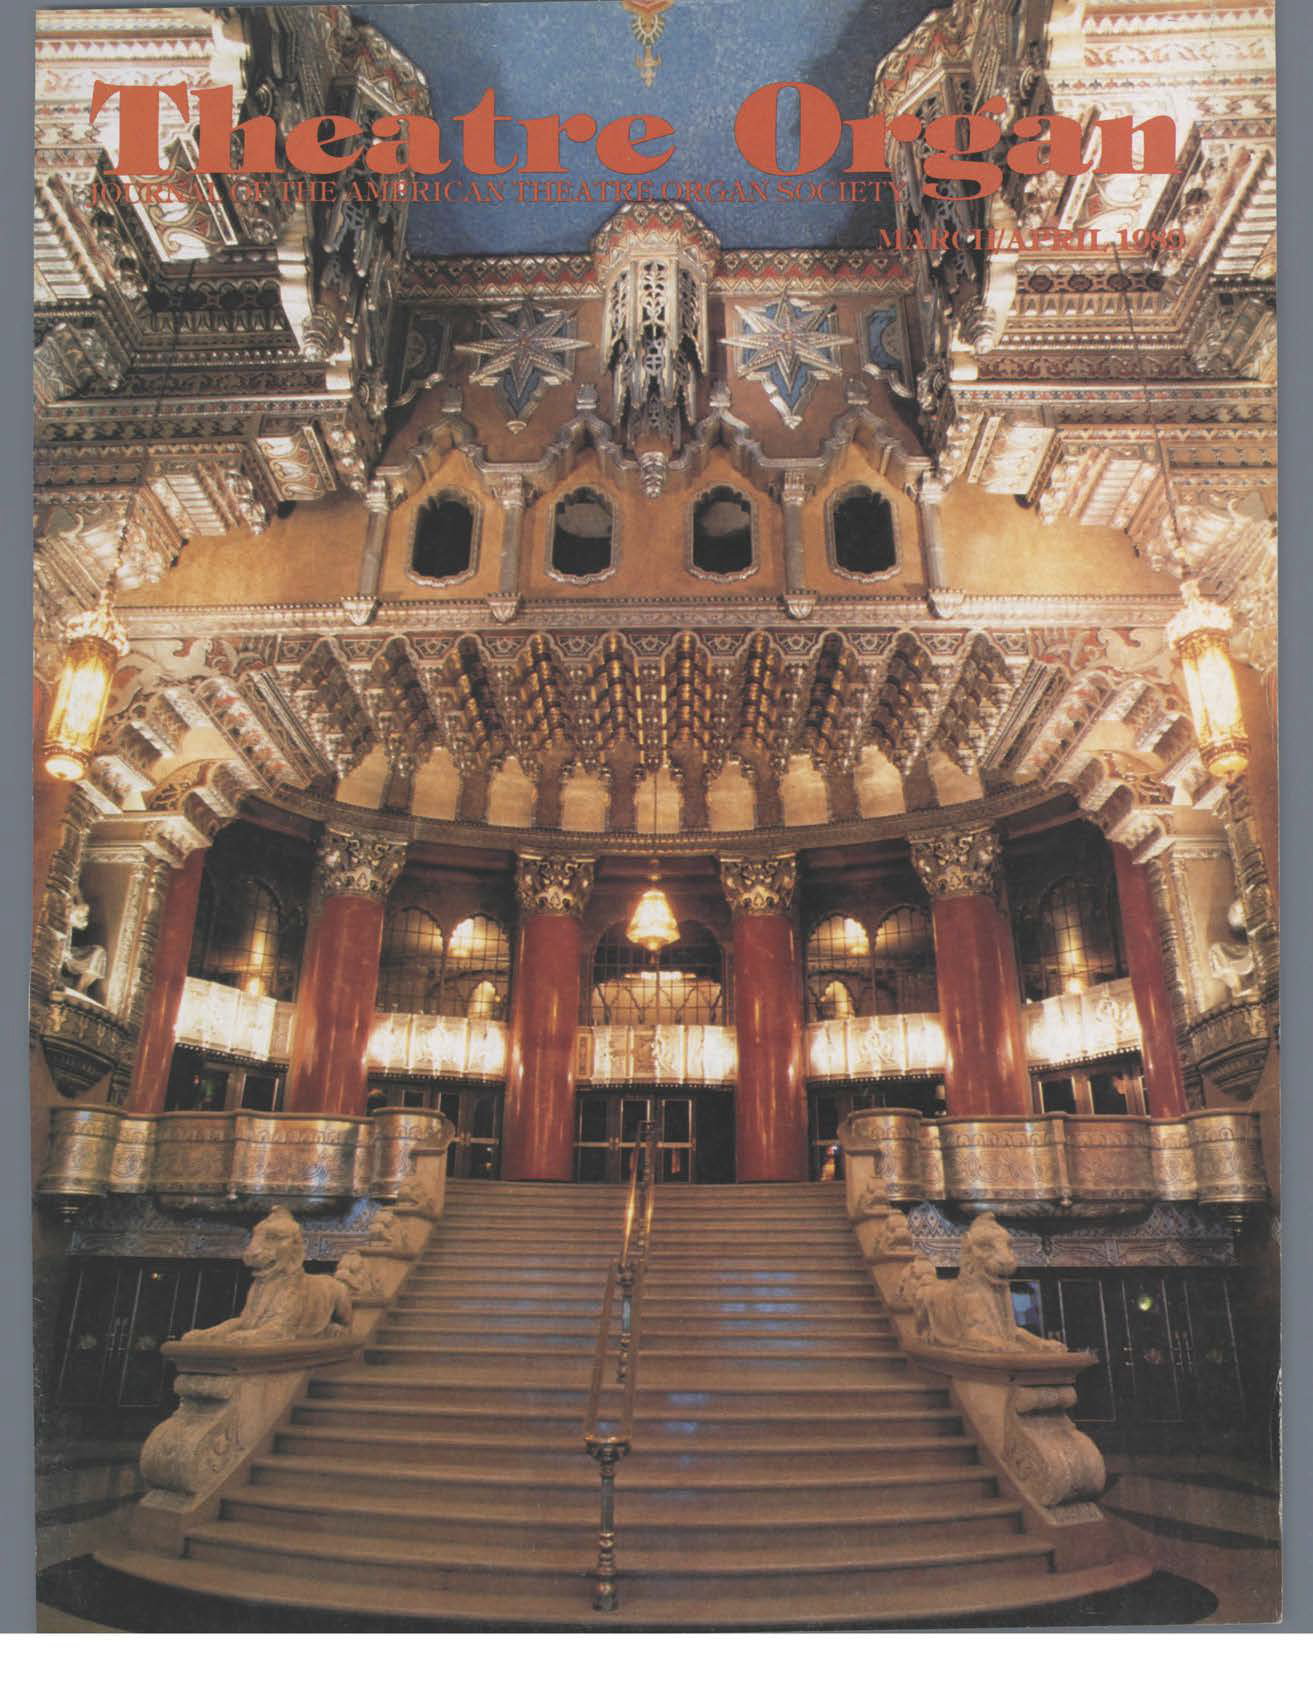 Theatre Organ, March - April 1989, Volume 31, Number 2